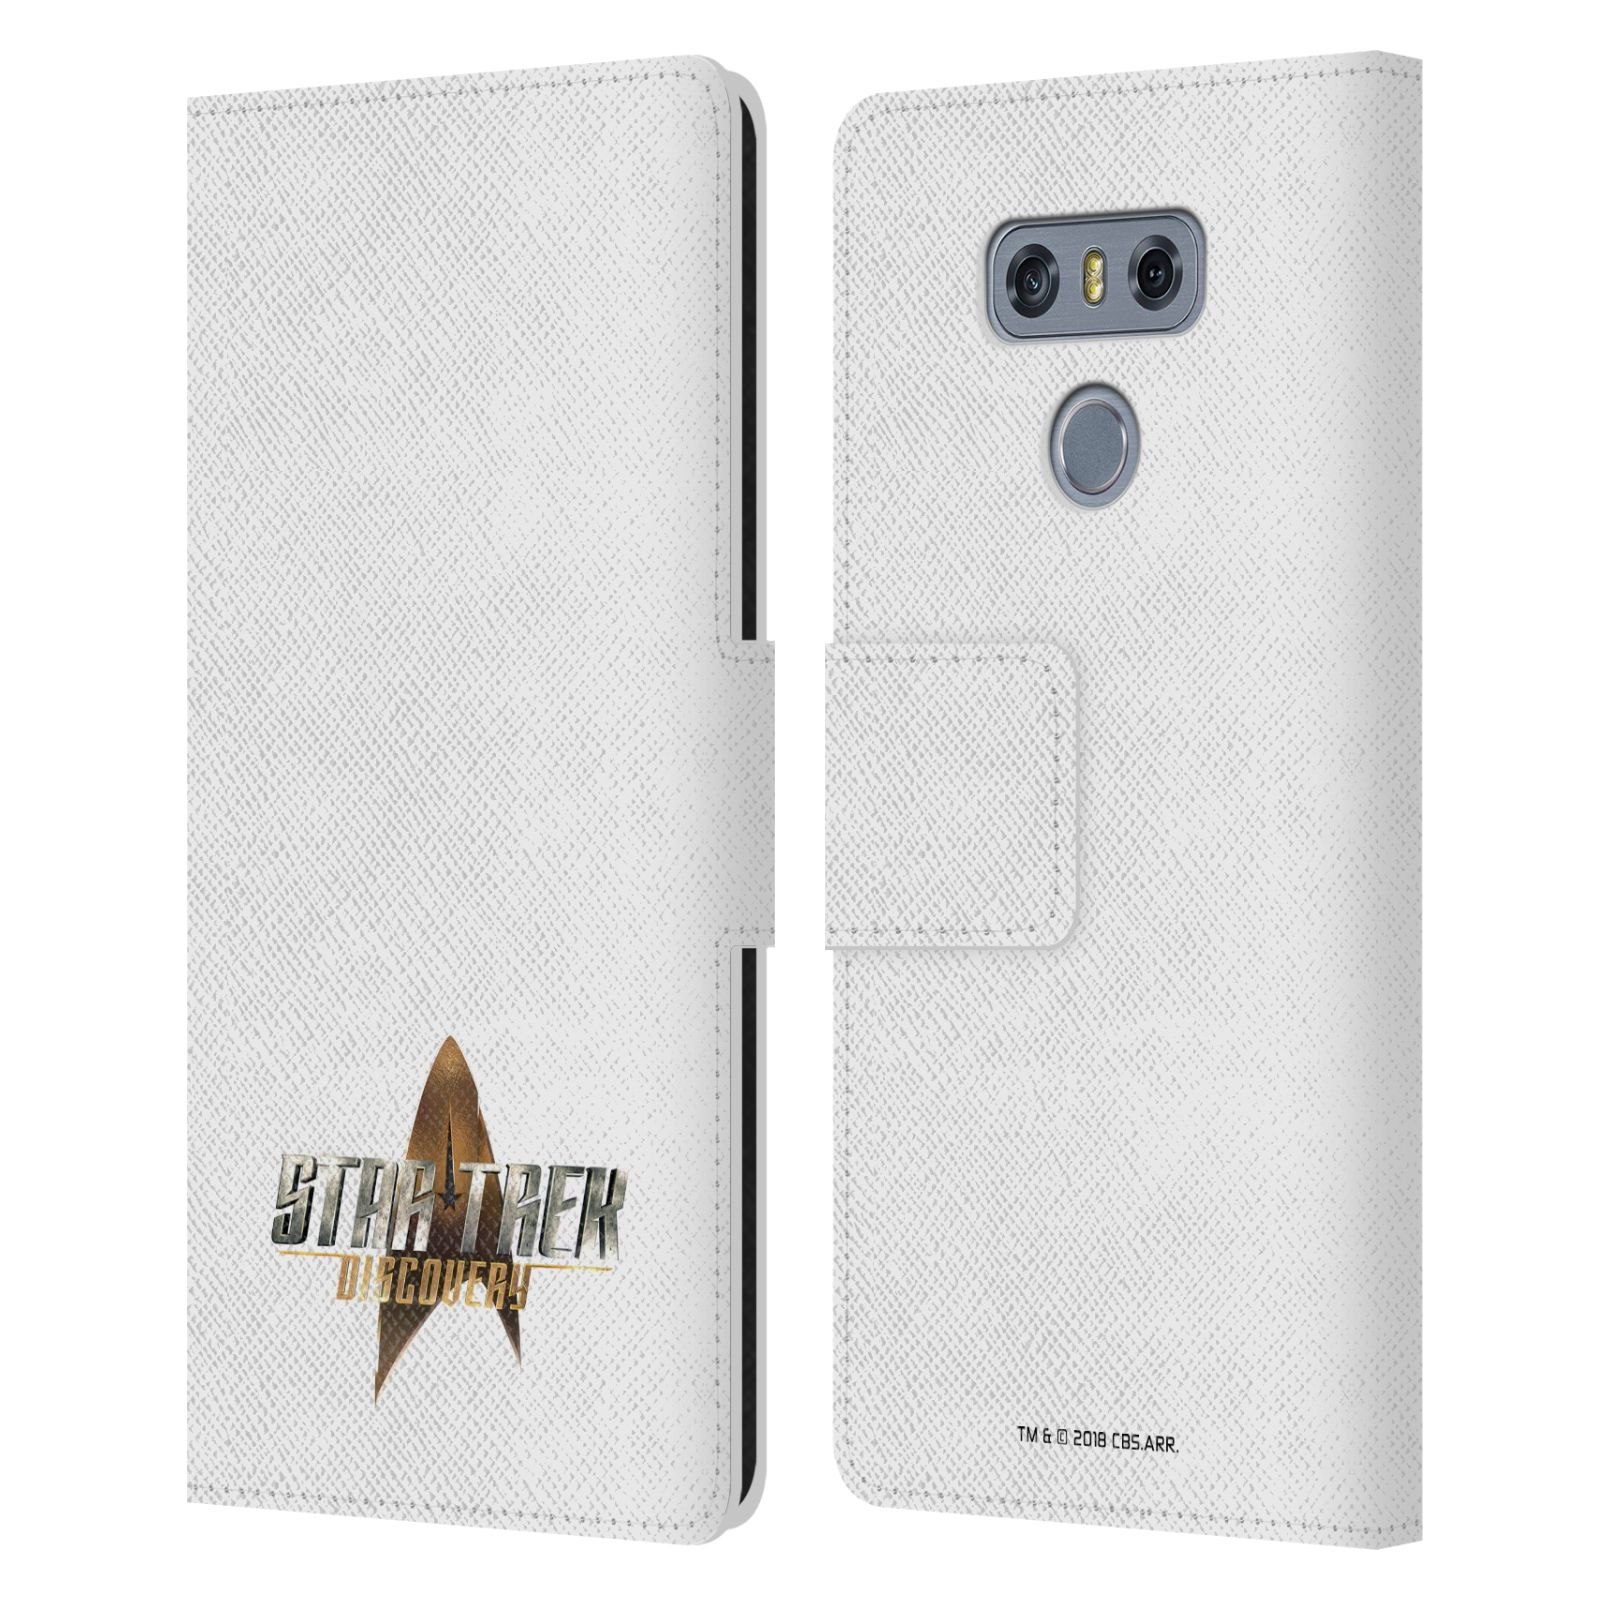 OFFICIAL-STAR-TREK-DISCOVERY-LOGO-LEATHER-BOOK-WALLET-CASE-COVER-FOR-LG-PHONES-1